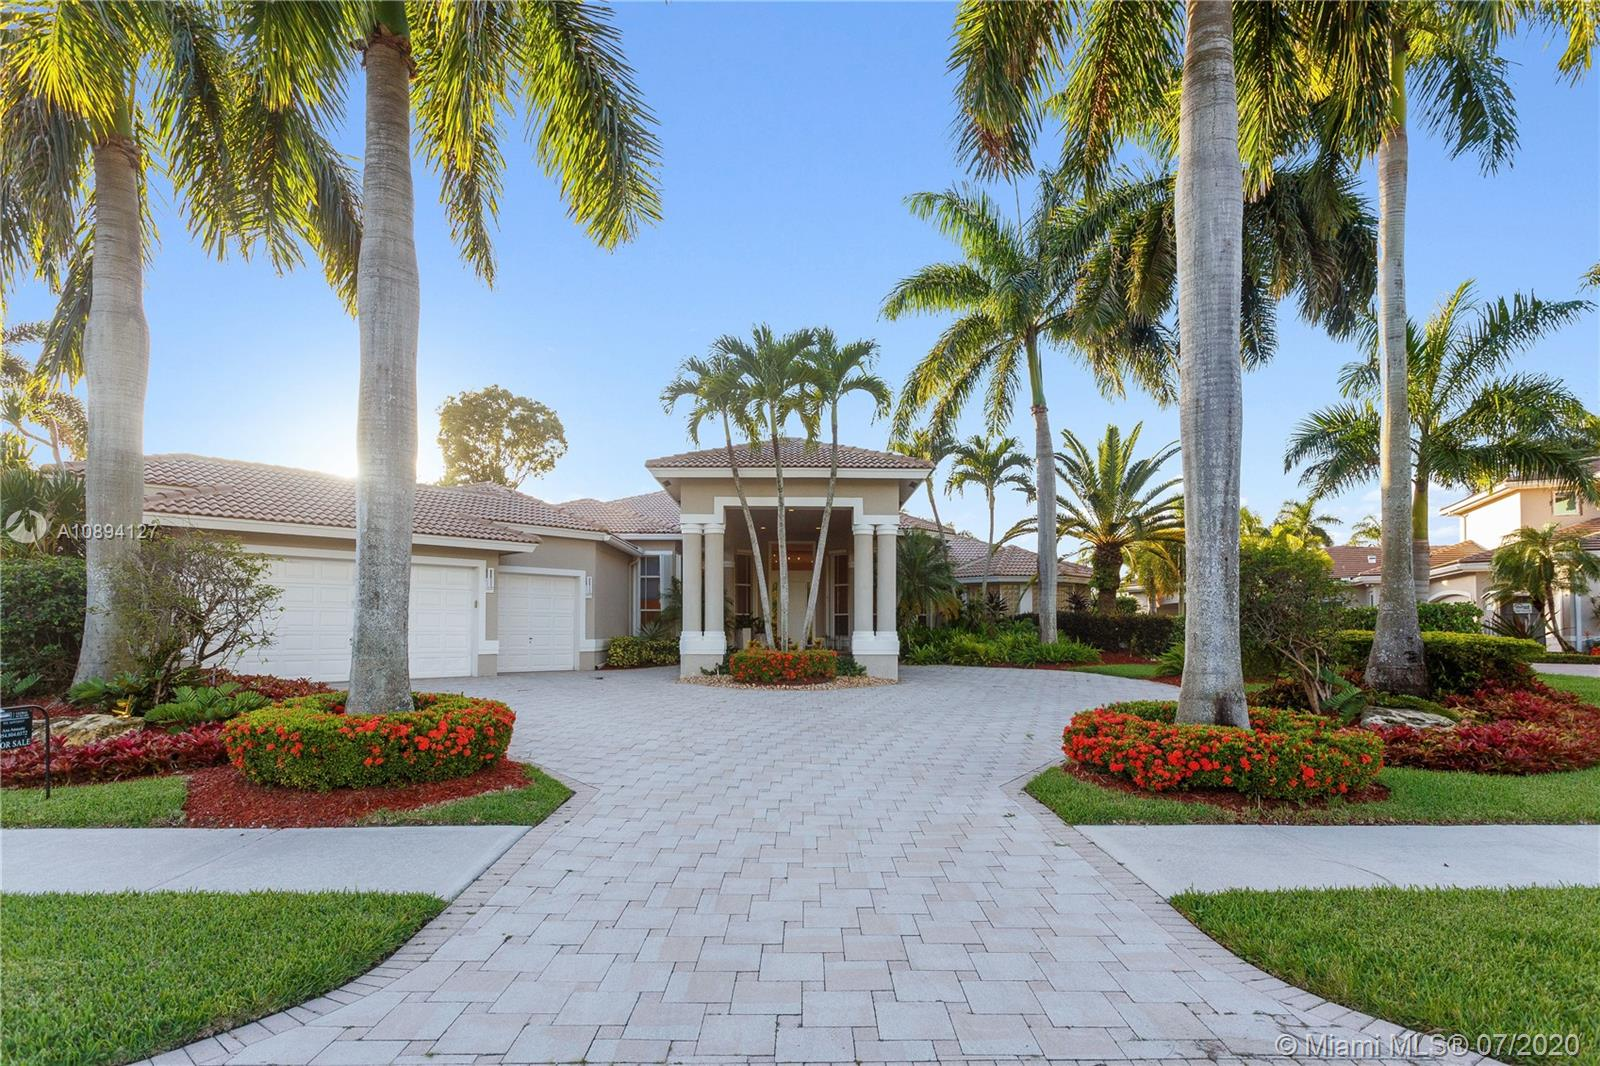 Magnificent home, impeccably renovated, in the prestigious gated community of Weston Hills Country Club. Located in the premier section of Royal Palm, with panoramic golf views, this luxurious and stylish estate includes 5 Bed/6.5 Bath + 2 Offices + Media/Game/Playroom, and a spectacular outdoor Gourmet Kitchen – perfect to entertain! The impressive entry takes you to a stunning and elegant living, designer decorated, with custom build-ins and high-end finishes. Marble and wood floors throughout, solid wood doors, among other upgrades. Luxurious master suite, recently remodeled. Crystal chandelier in the dining room included. Access to excellent A-Rated Public Schools. This home is simply extraordinary and unique!